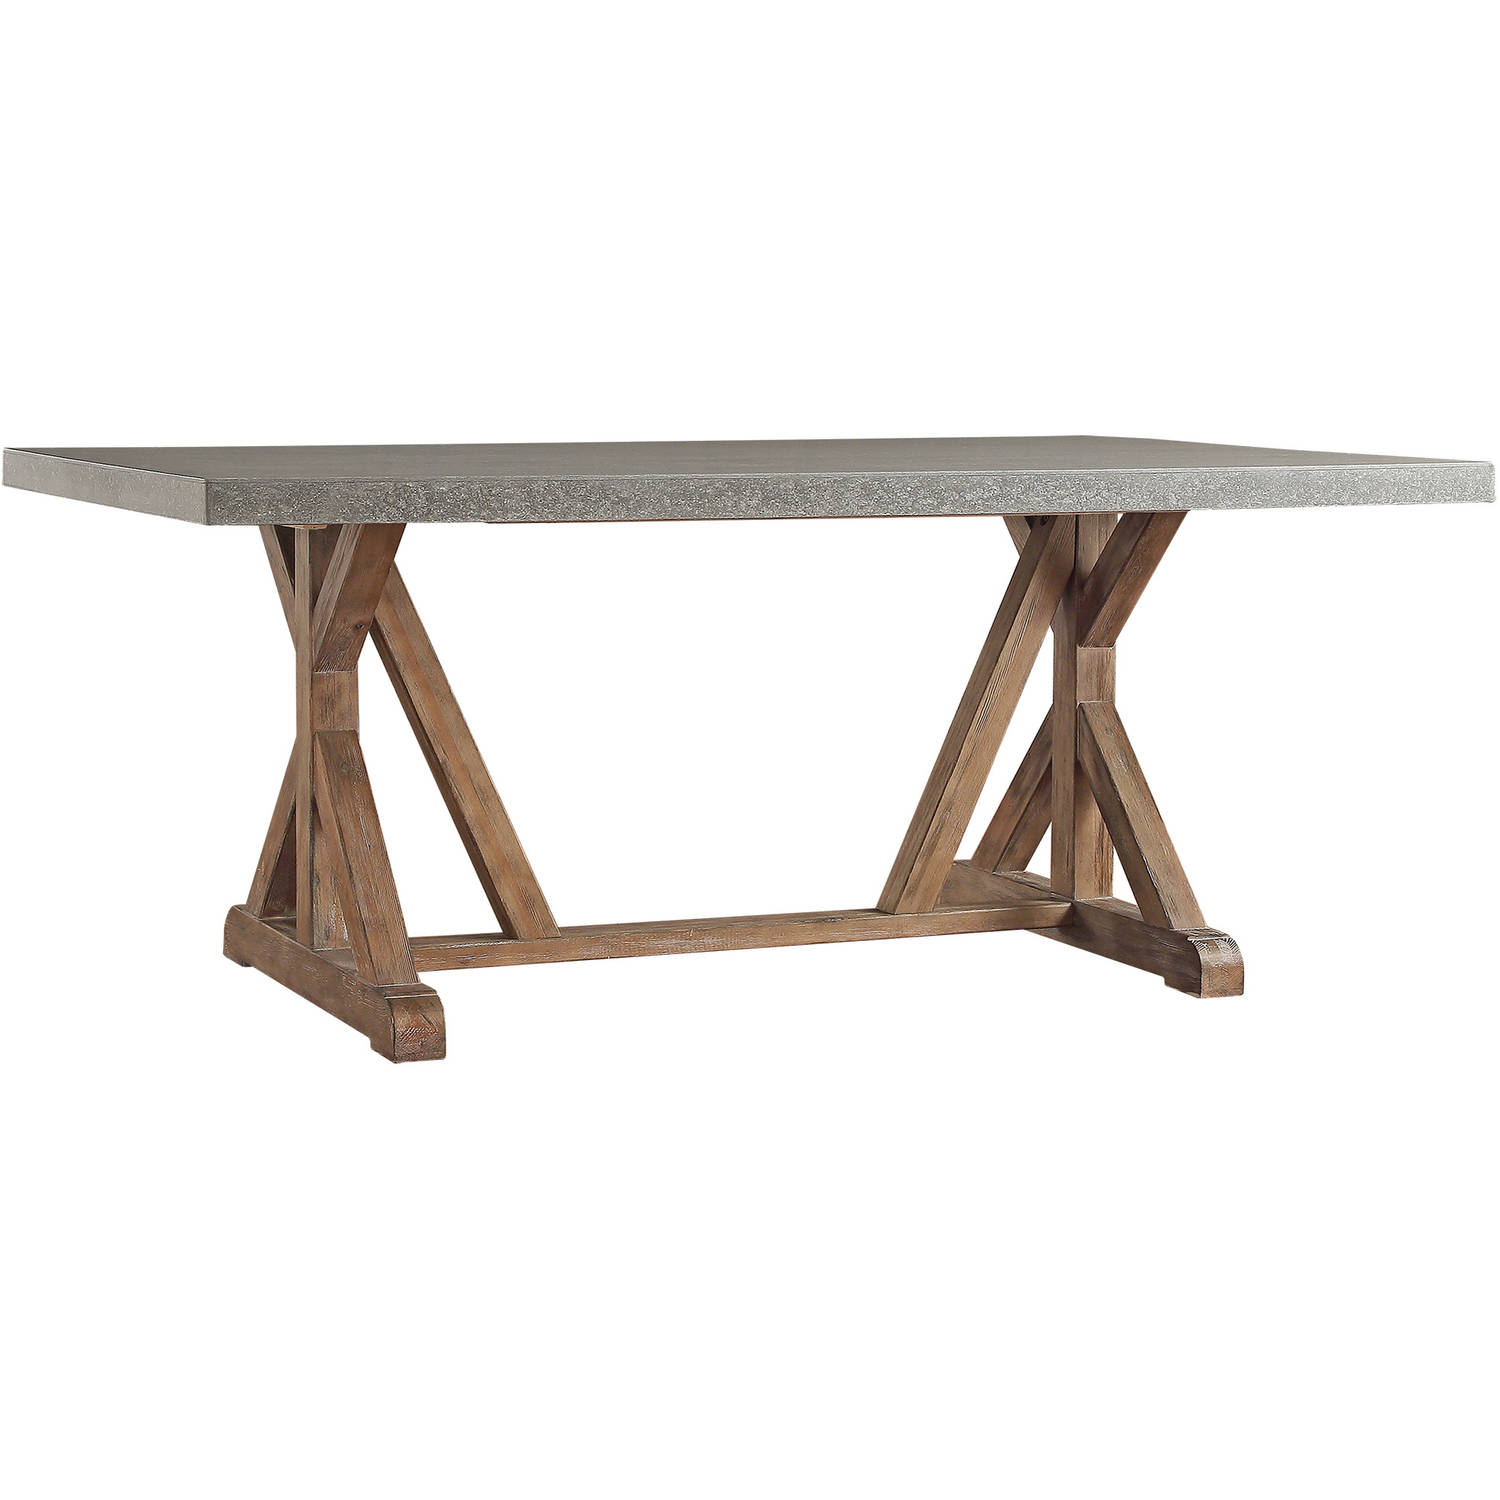 Weston Home Rectangular Concrete Top Dining Table, Brown And Concrete